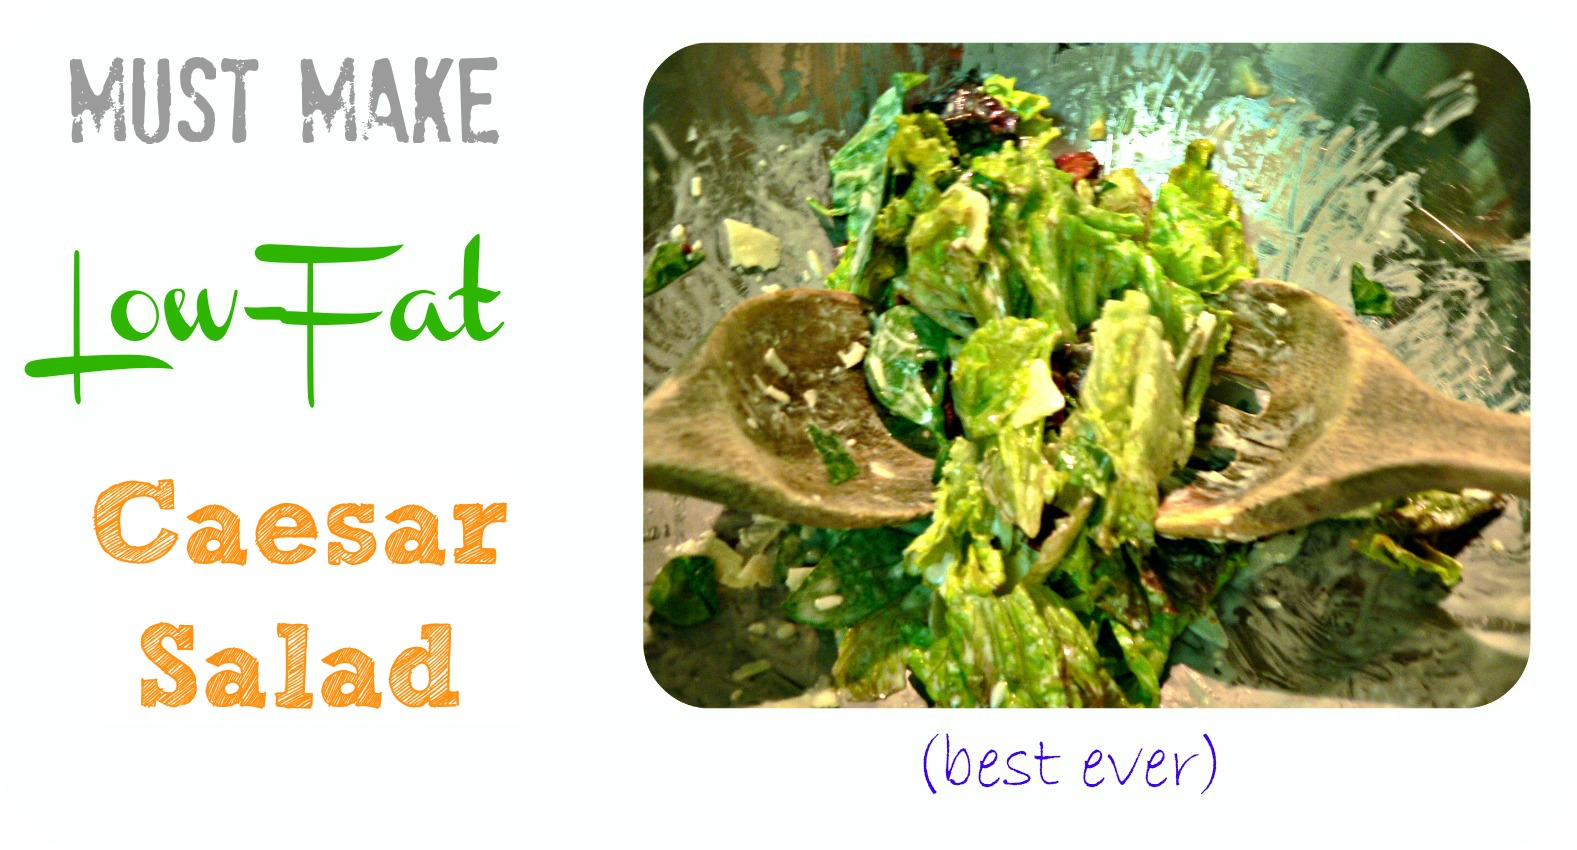 pinterestcaesarsalad2 Must Make, Low Fat Caesar Salad